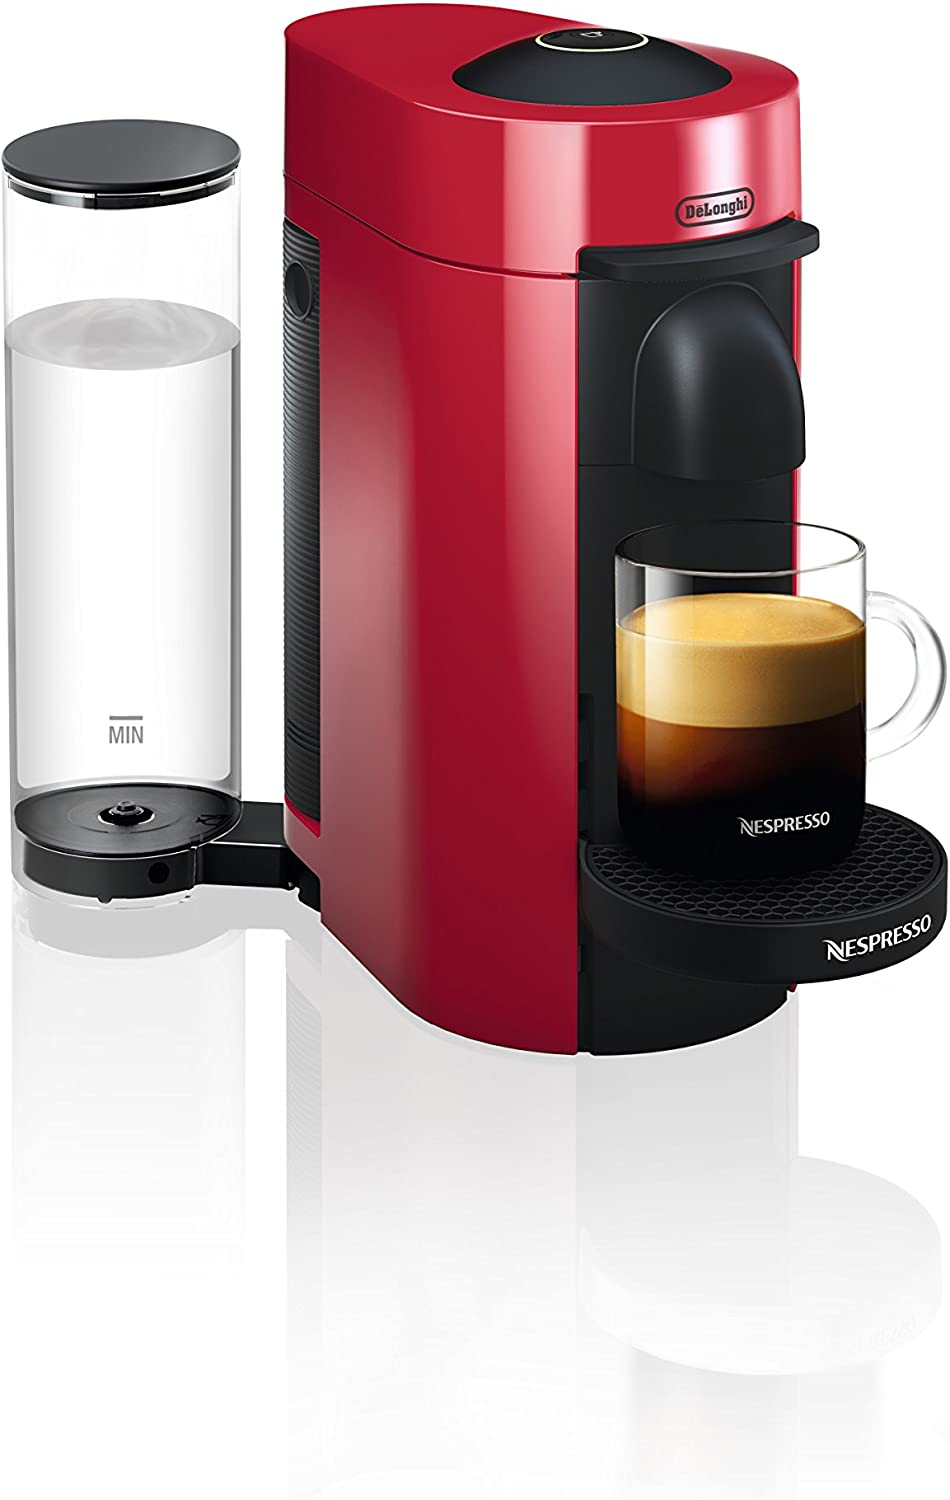 Nespresso by De Longhi ENV150R VertuoPlus Coffee and Espresso Machine by De Longhi, Red